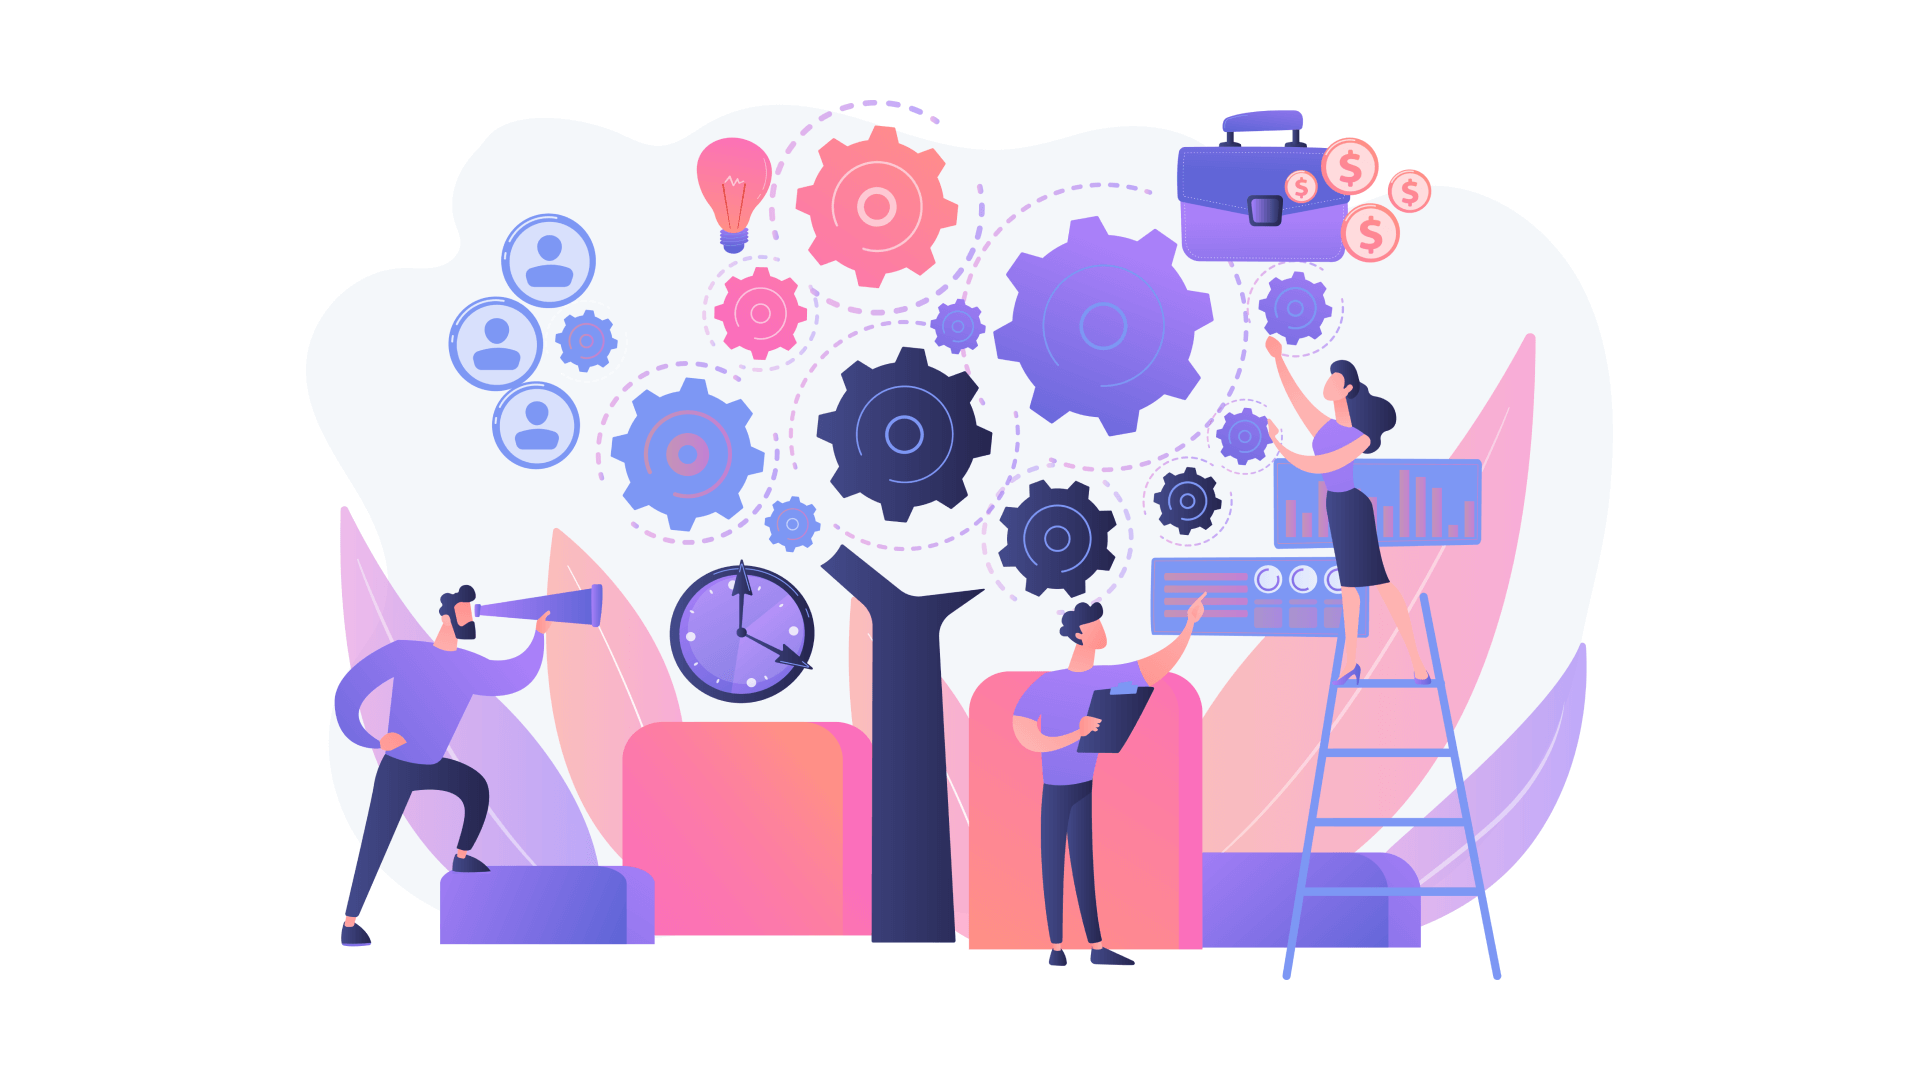 How can you increase productivity with proper EAs? Let us share the tips and tricks for successful enterprise software development tested by time.